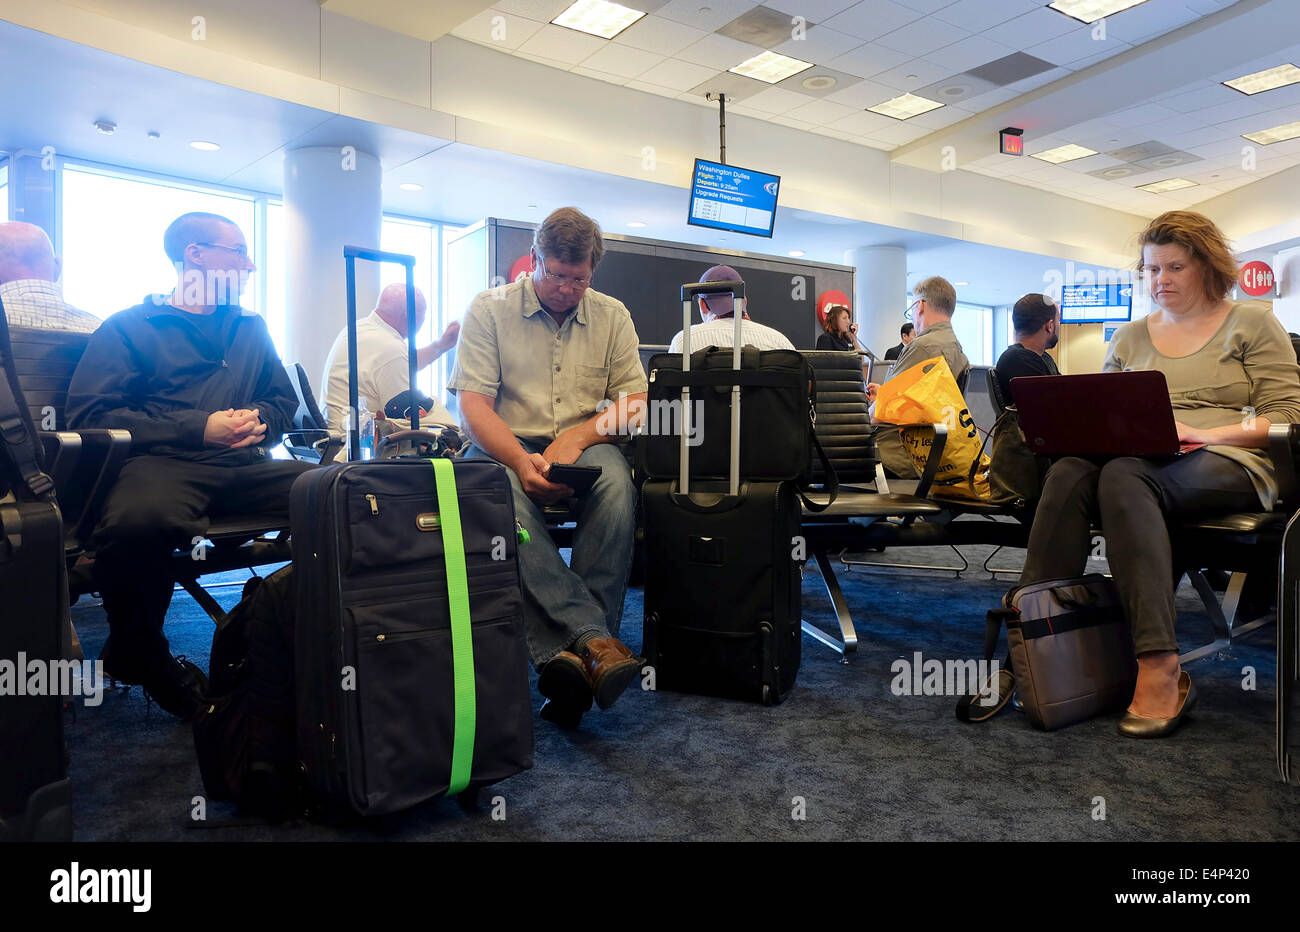 Pssengers waiting for a flight at a departure gate at Los Angeles International Airport, California, USA - Stock Image